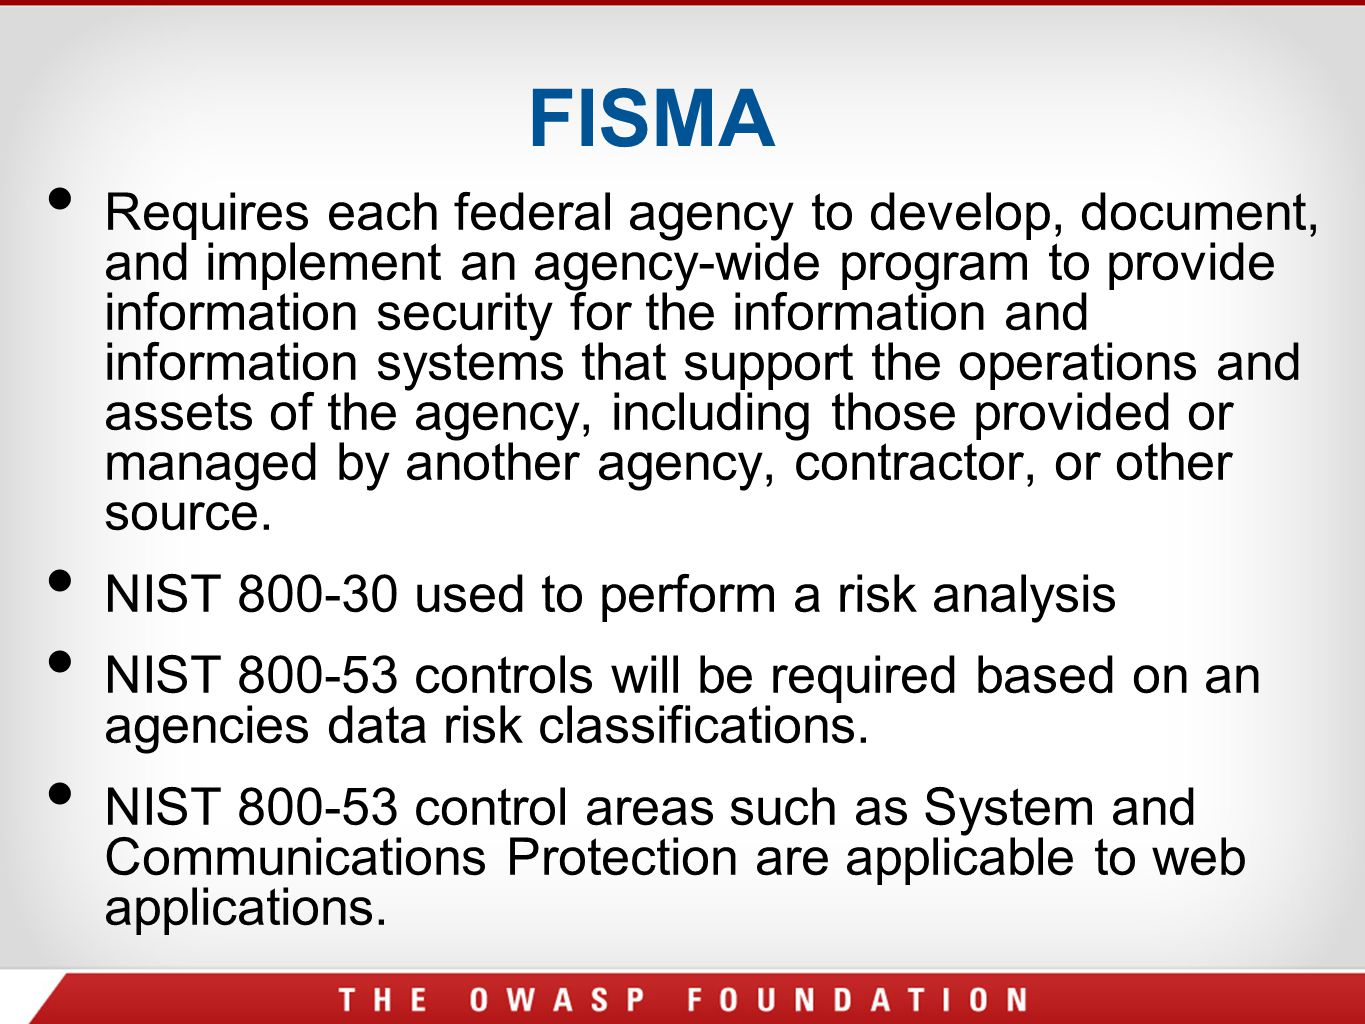 FISMA Requires each federal agency to develop, document, and implement an agency-wide program to provide information security for the information and